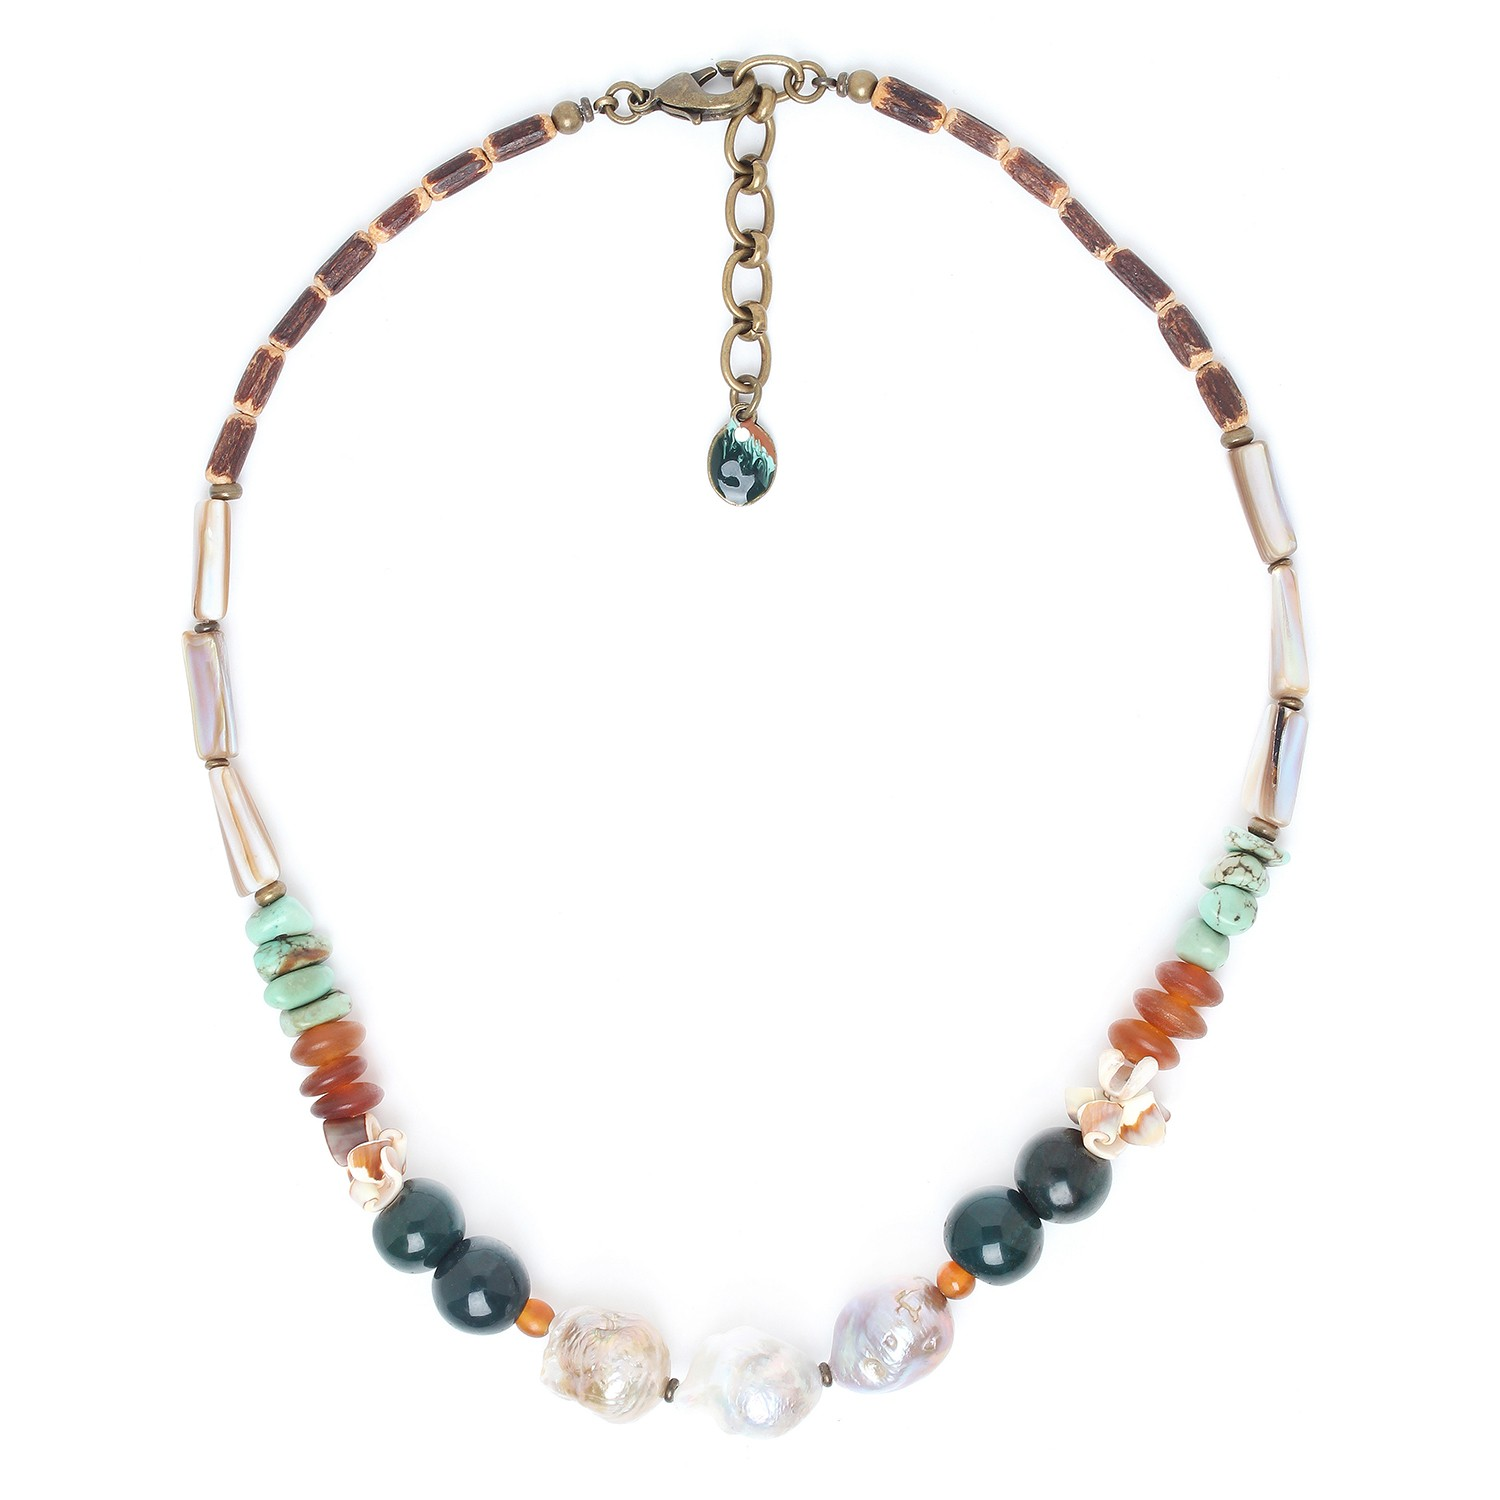 FOREST THERAPY collier perles de culture